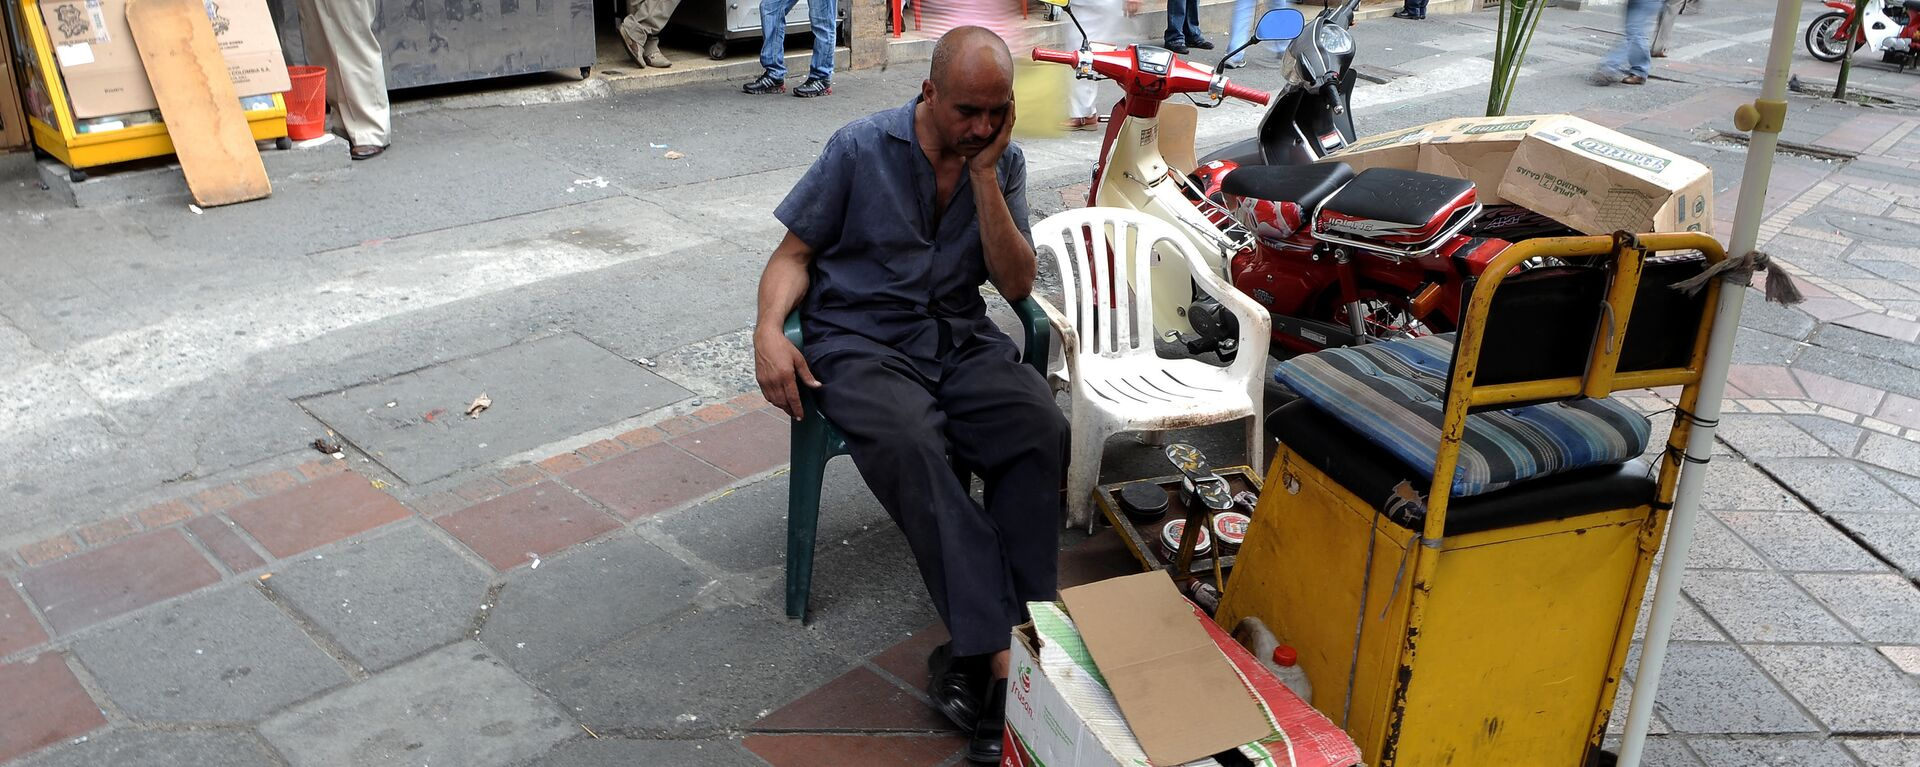 A shoeshiner awaits for customers on May 25, 2010 in Cali, Colombia. - Sputnik Mundo, 1920, 23.02.2021